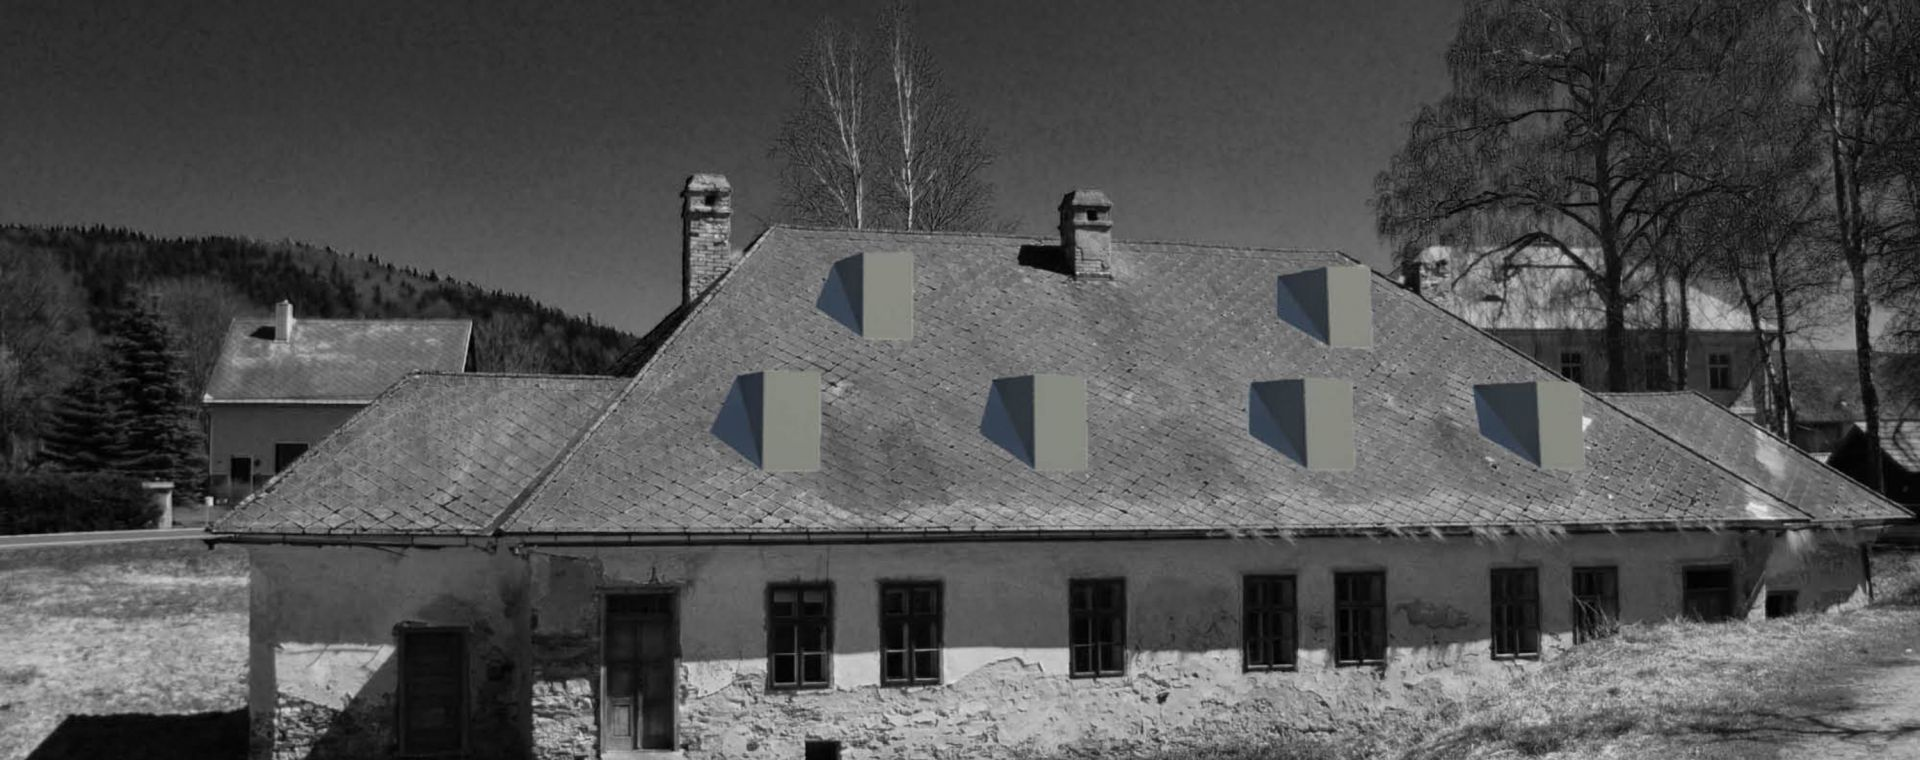 Reconstruction of the classicm house near Milovy, 2010-2012, CZ